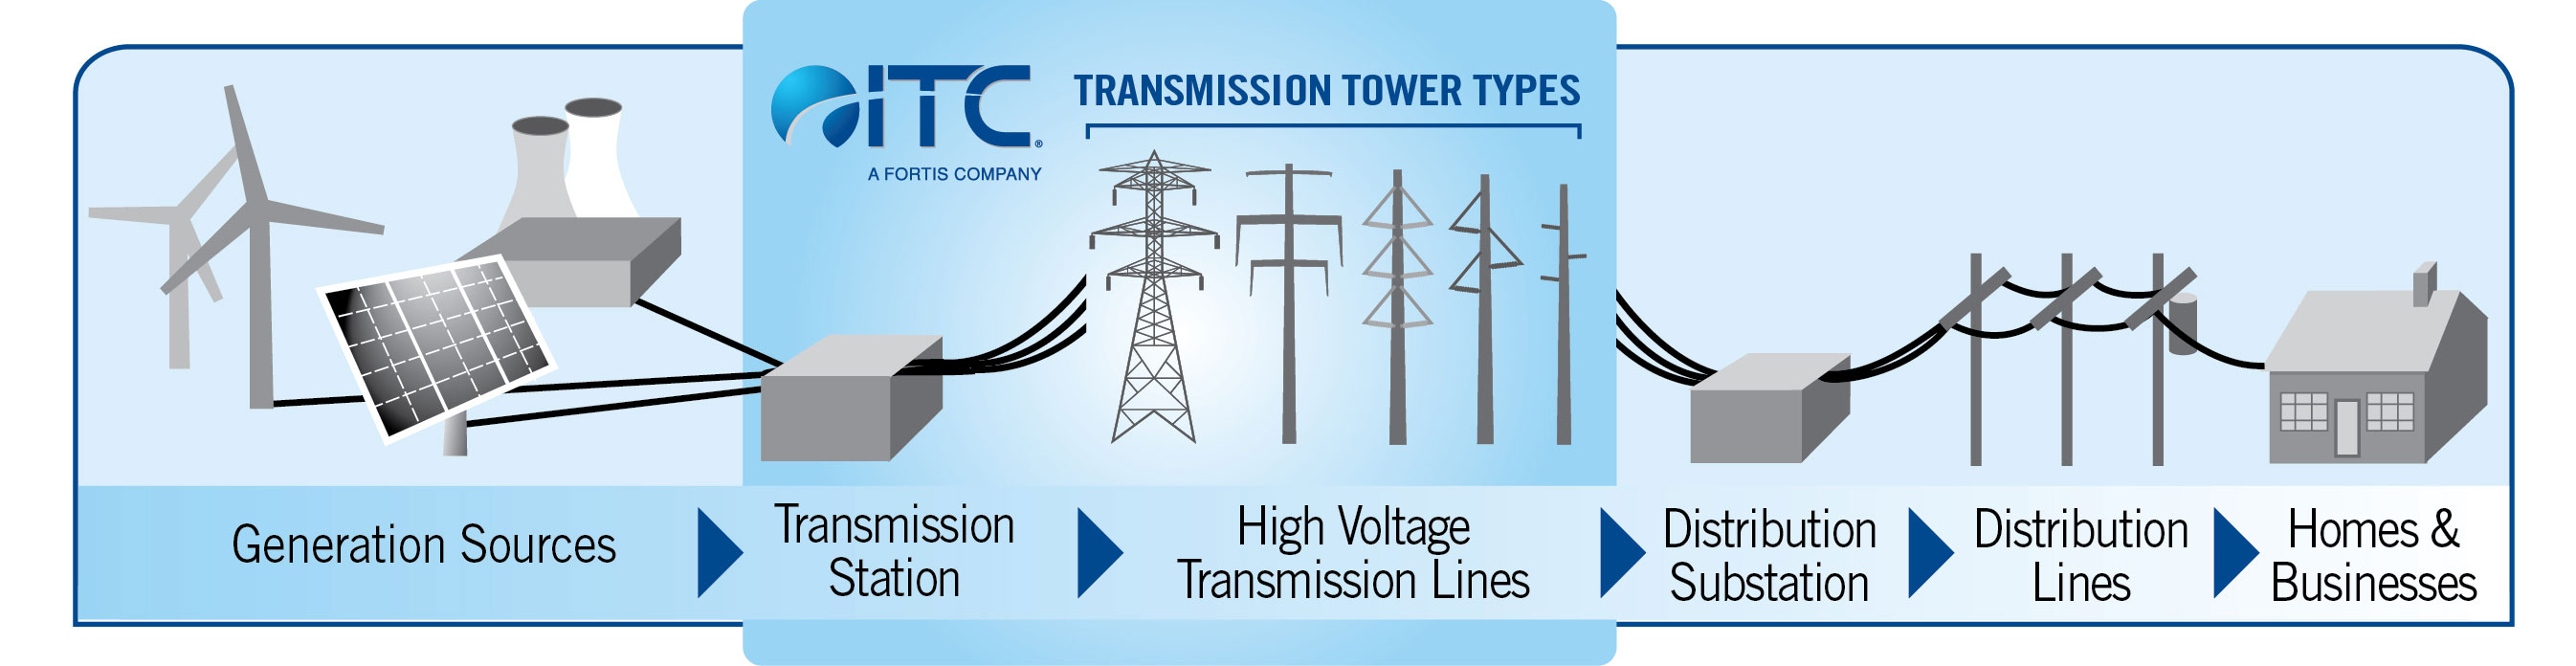 Power flows to us through a three-part system, and at the center are the high-voltage transmission lines that move power from where it's generated to where it's needed.